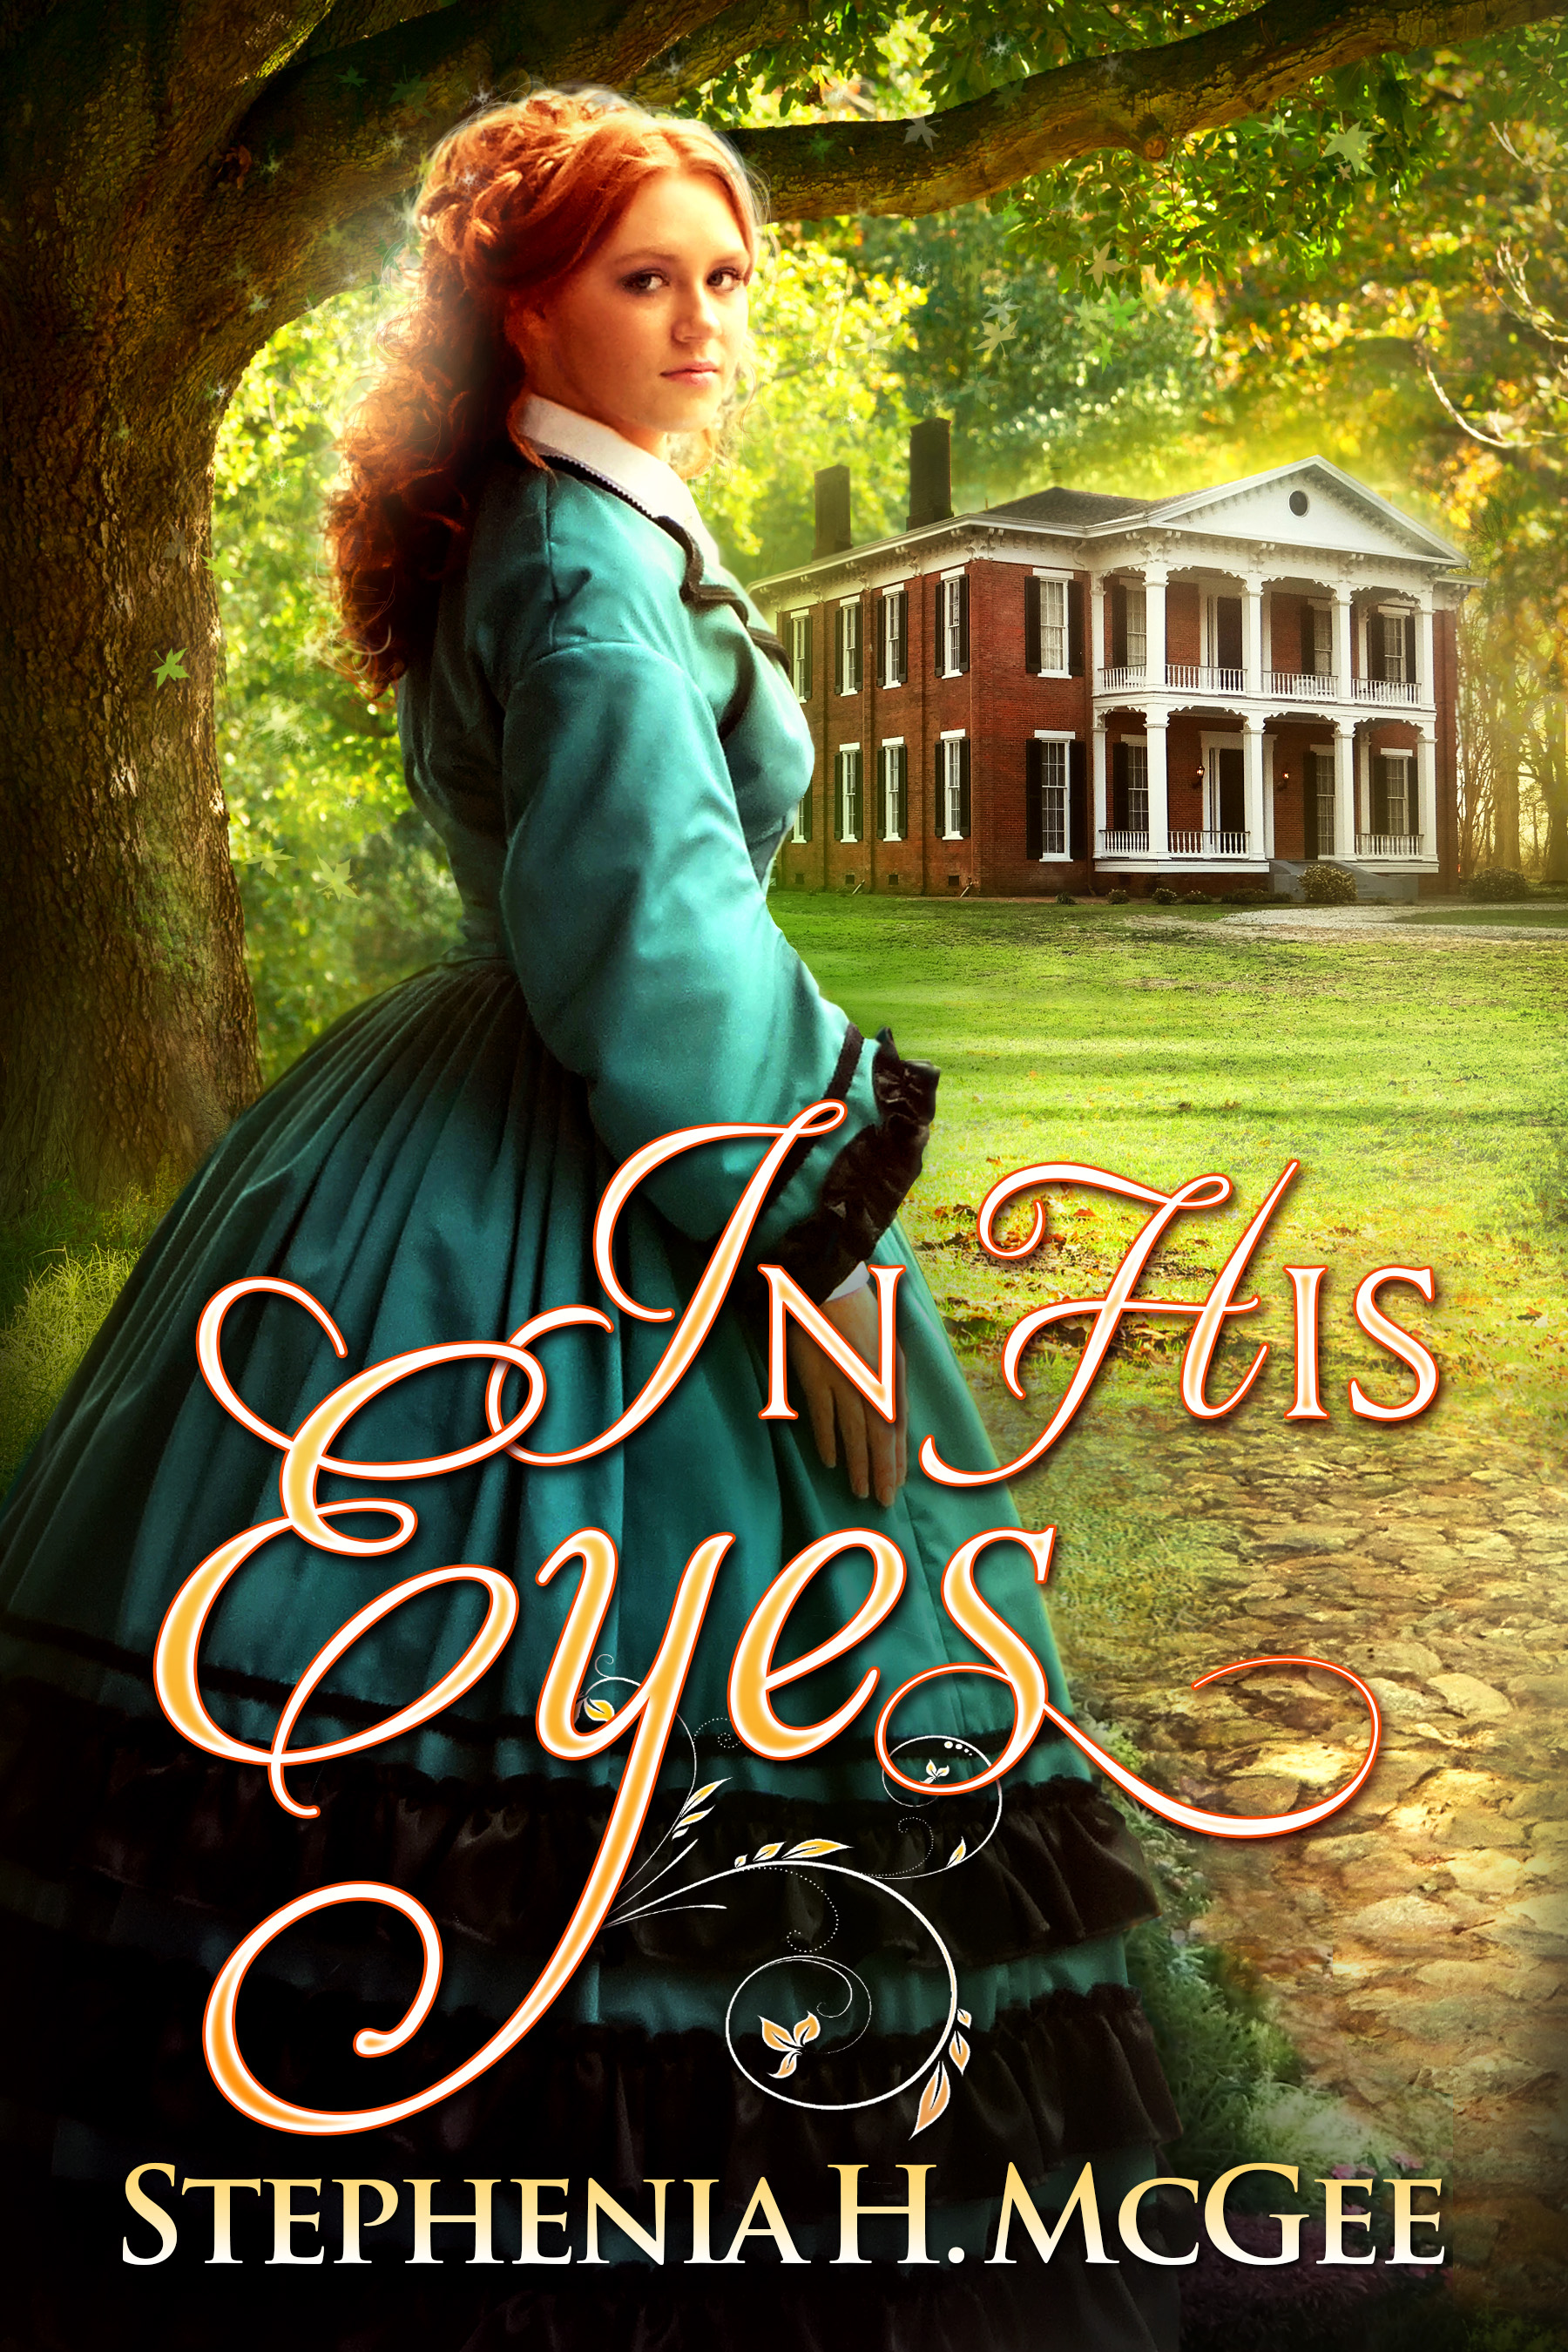 In His Eyes - Stephenia H. McGee